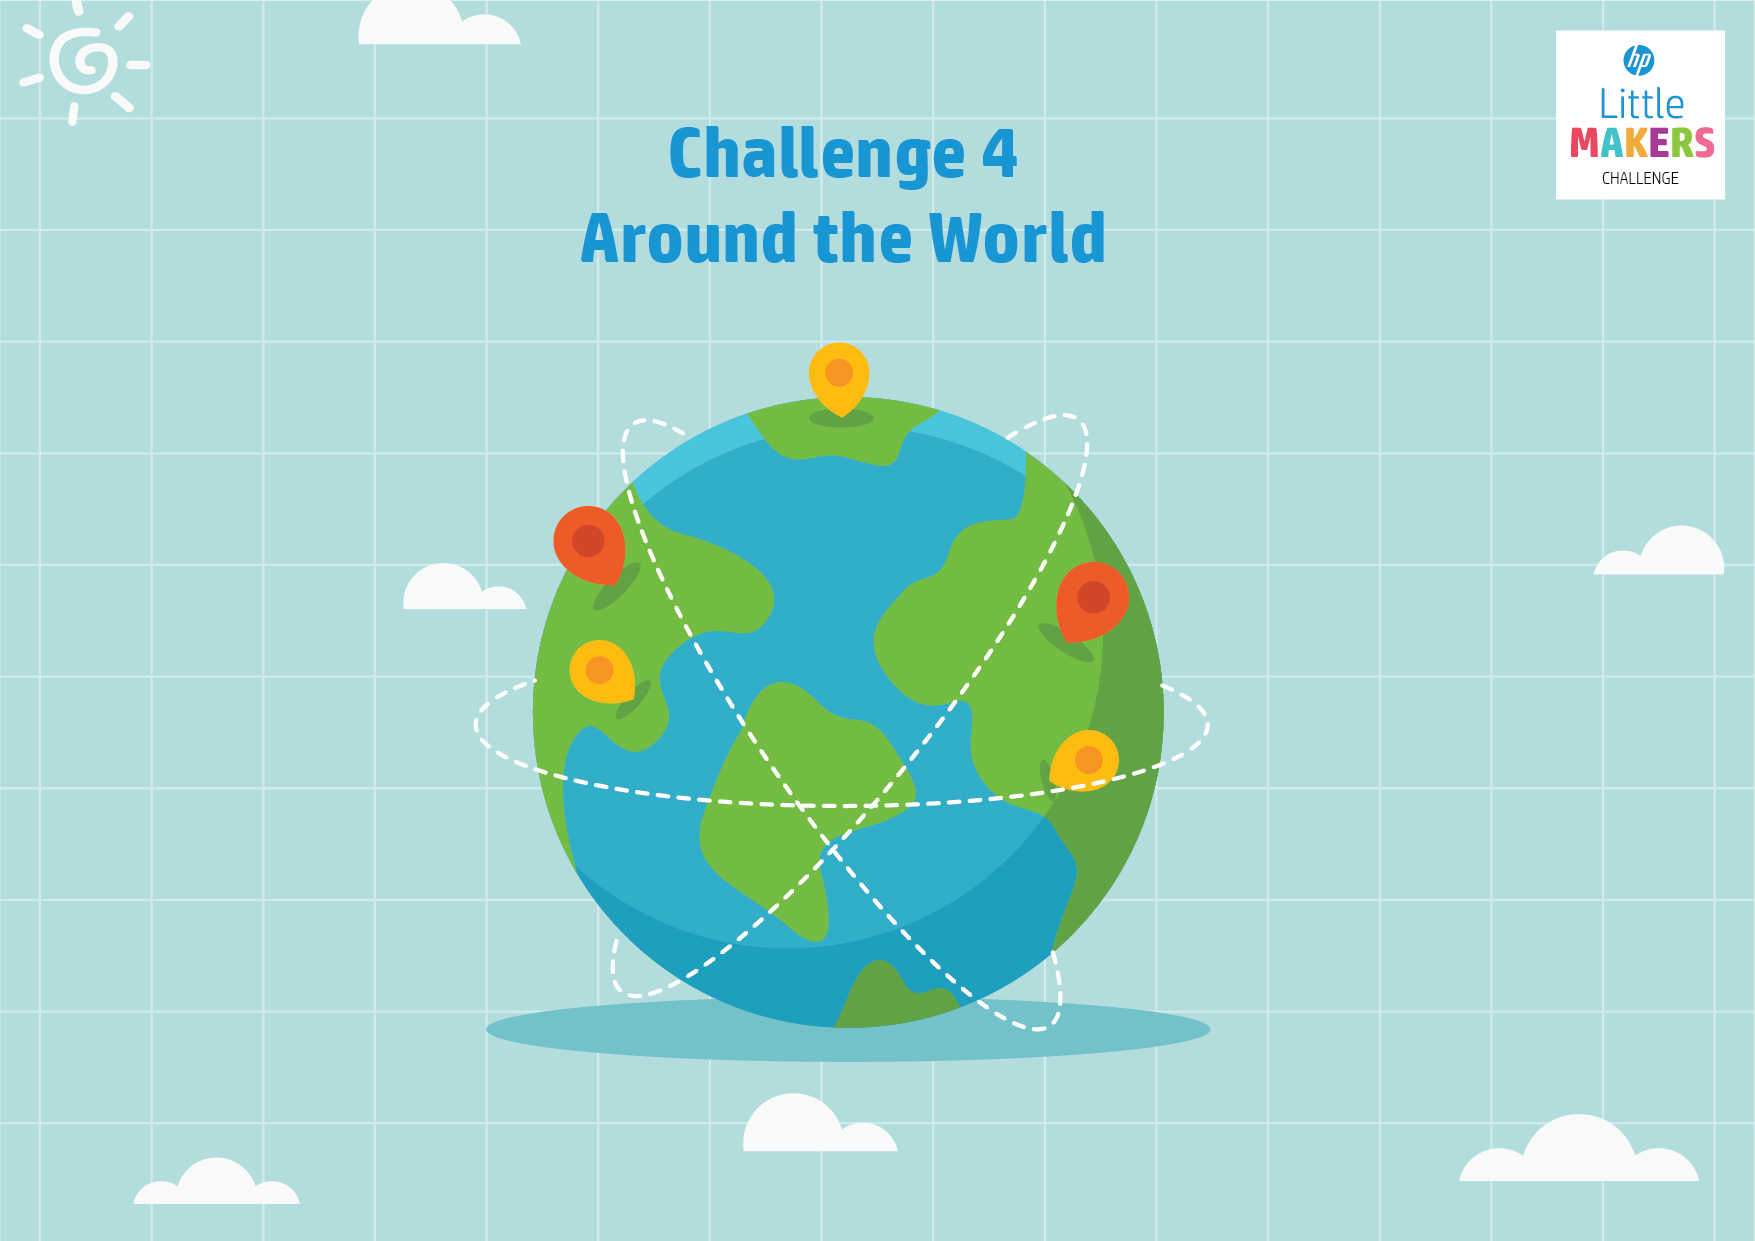 Challenge 4: Around the World